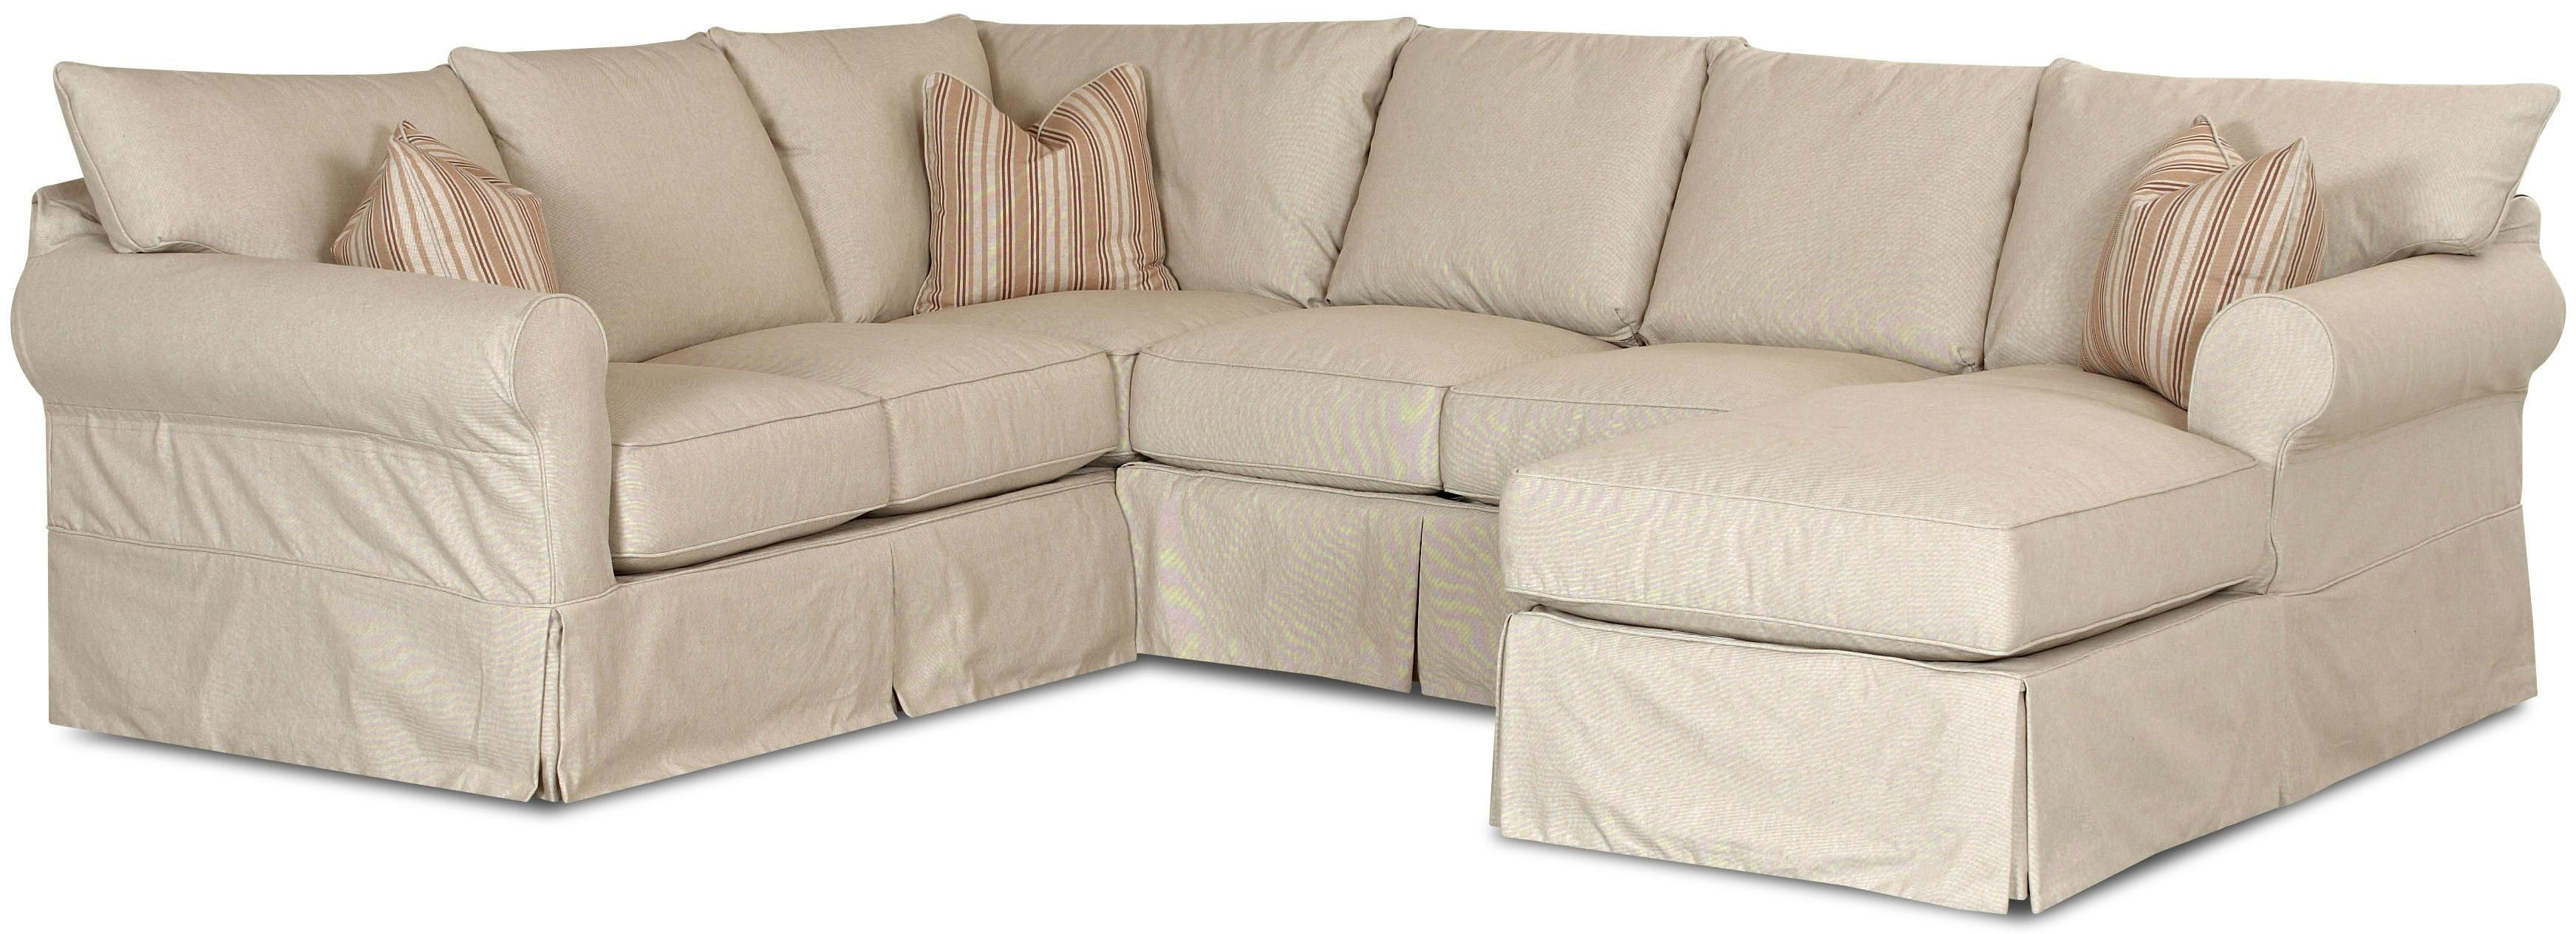 Featured Image of Sofas Cover For Sectional Sofas